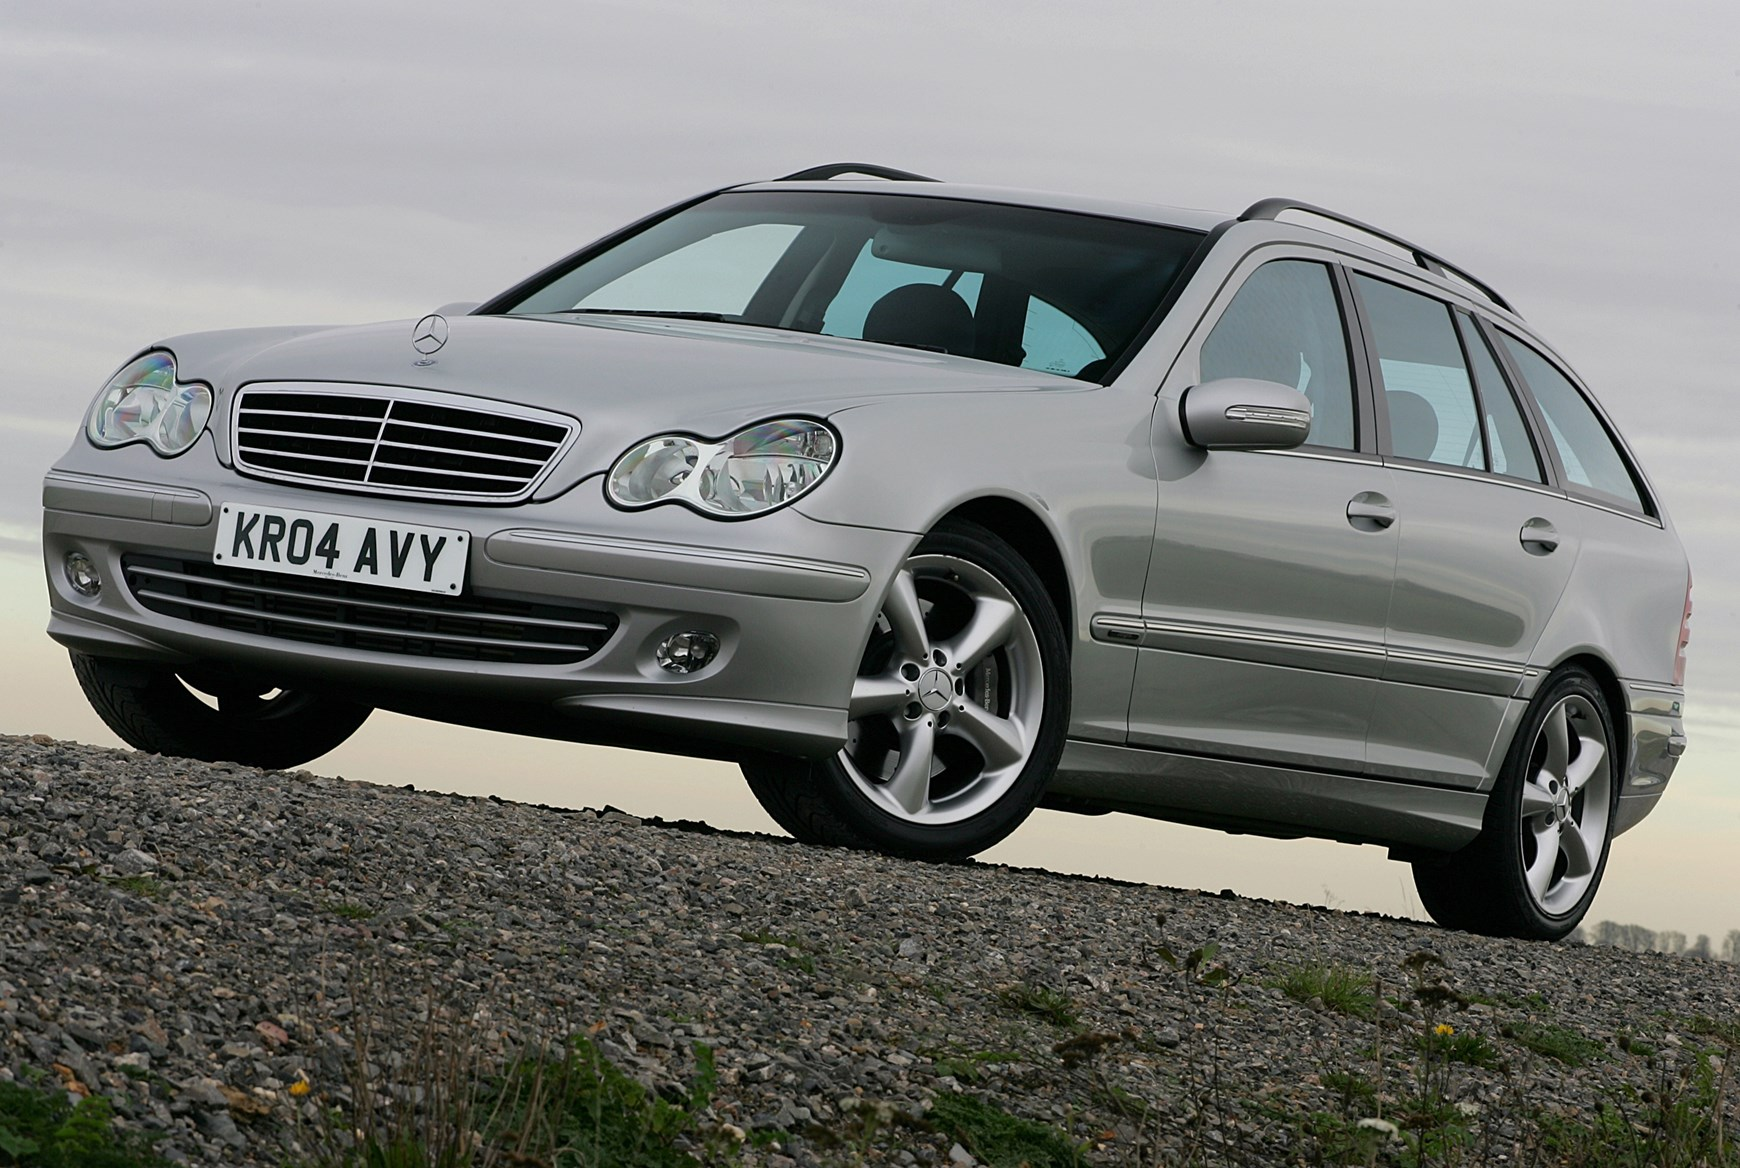 Used Mercedes-Benz C-Class Estate (2000 - 2007) Review | Parkers